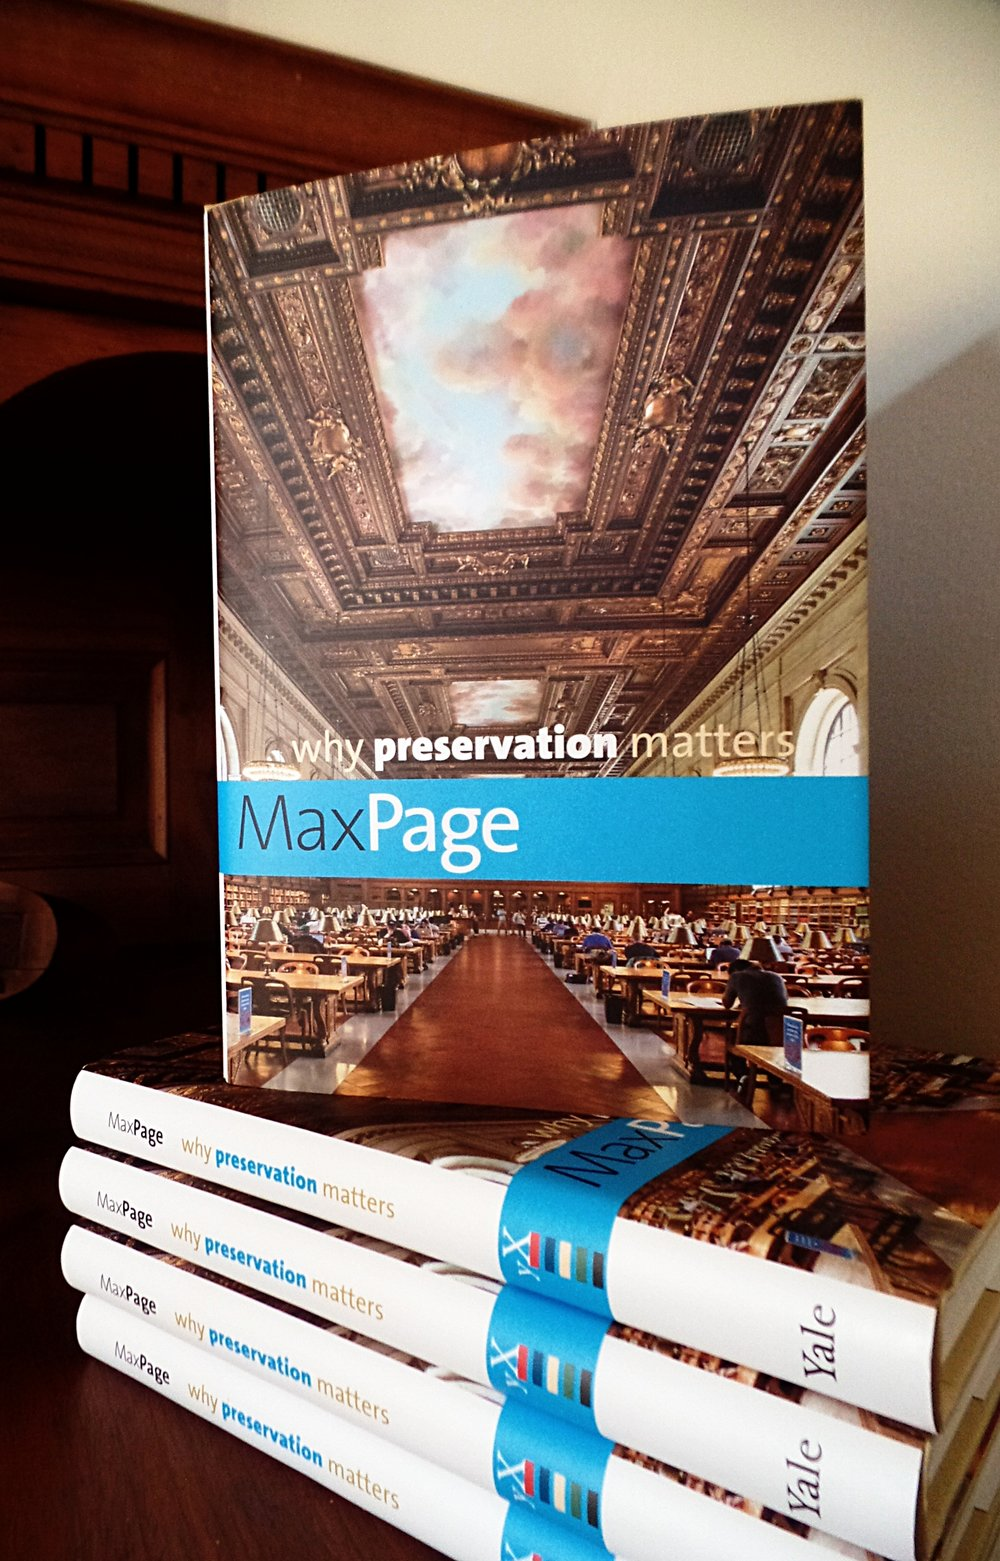 Book_3_Why_Preservation_Matters.JPG